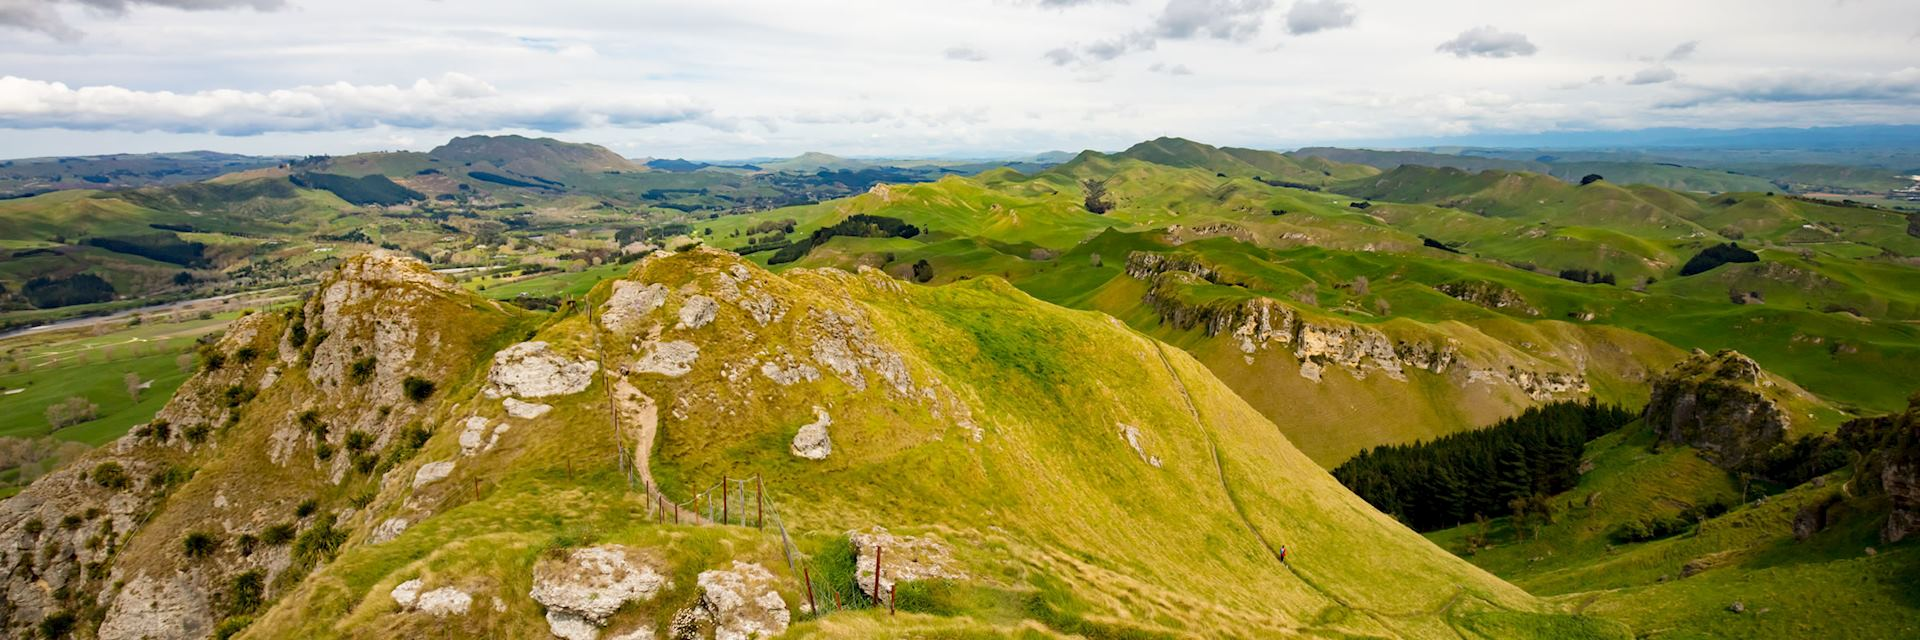 Te Mata Peak, Hastings